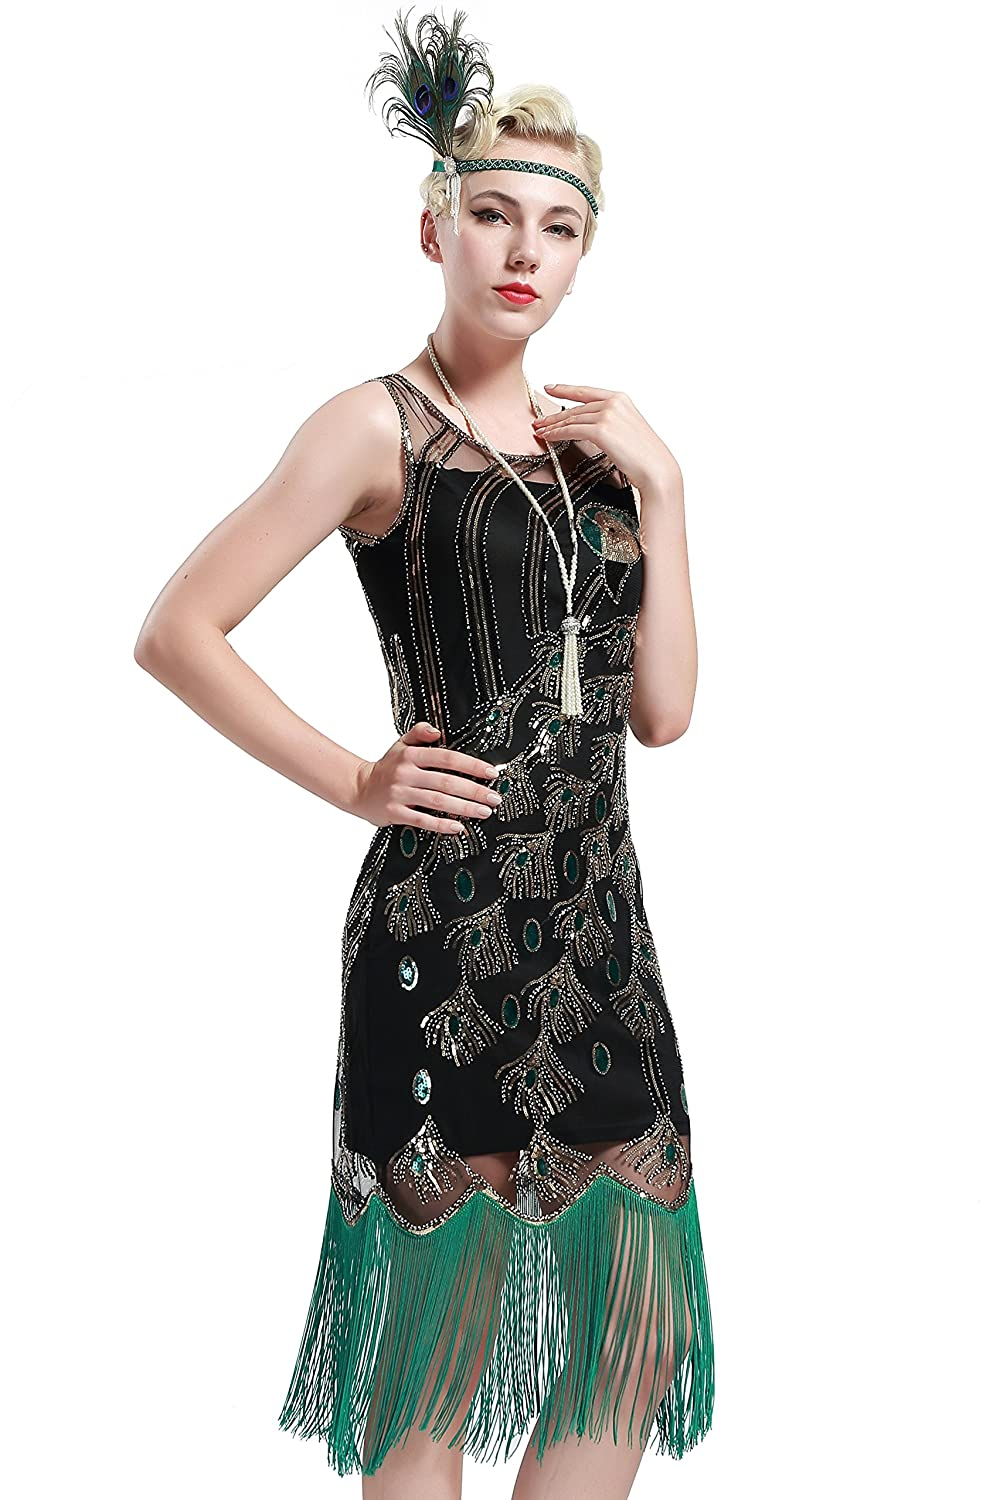 Roaring 20s Costumes- Flapper Costumes, Gangster Costumes BABEYOND 20s Vintage Peacock Sequin Fringed Party Flapper Dress $38.99 AT vintagedancer.com